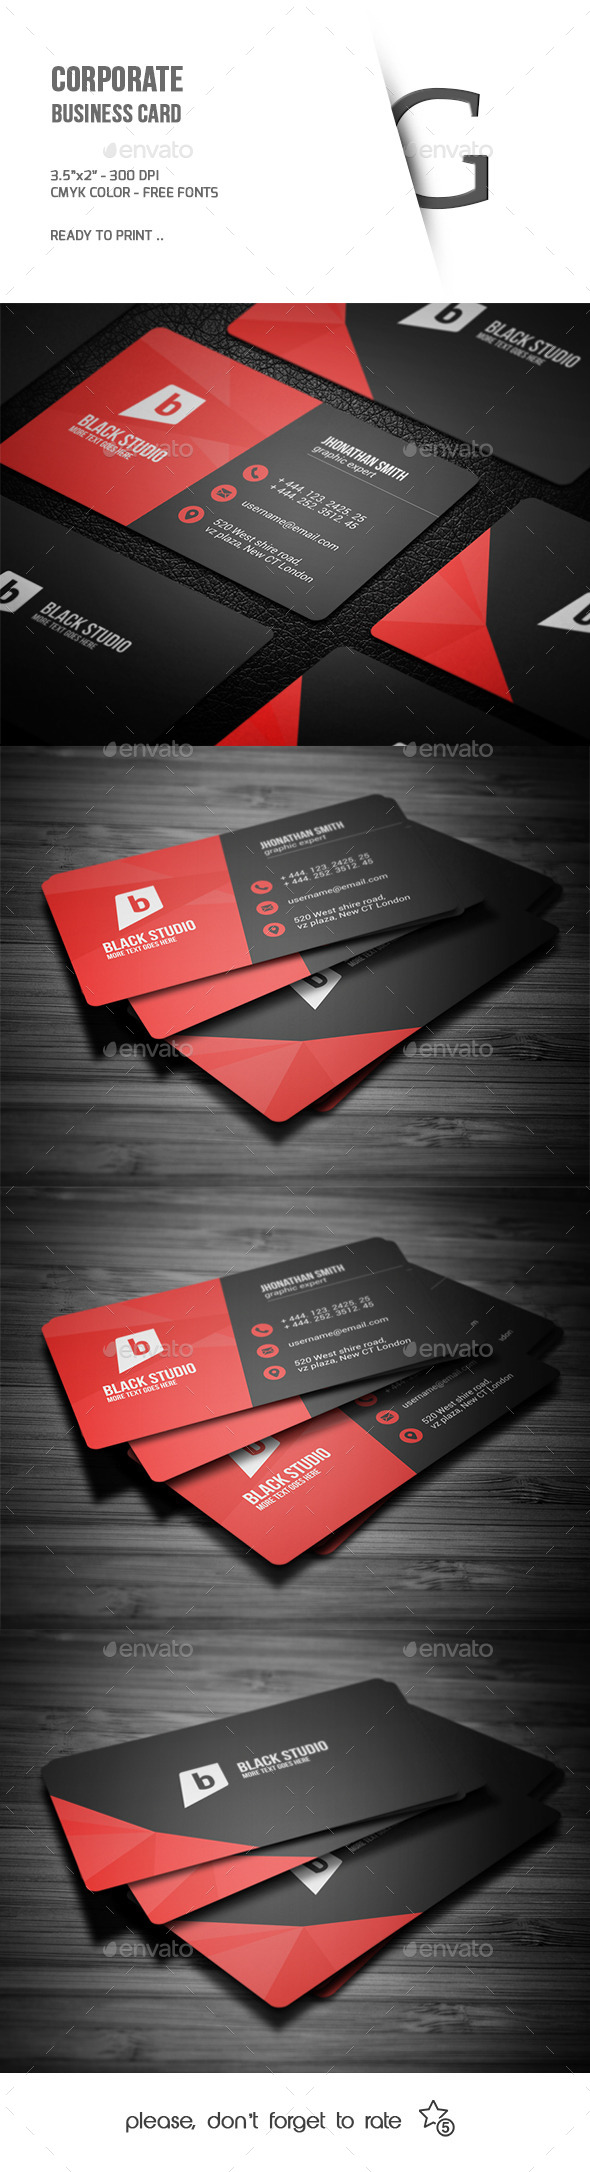 GraphicRiver Corporate Business Card 9818649